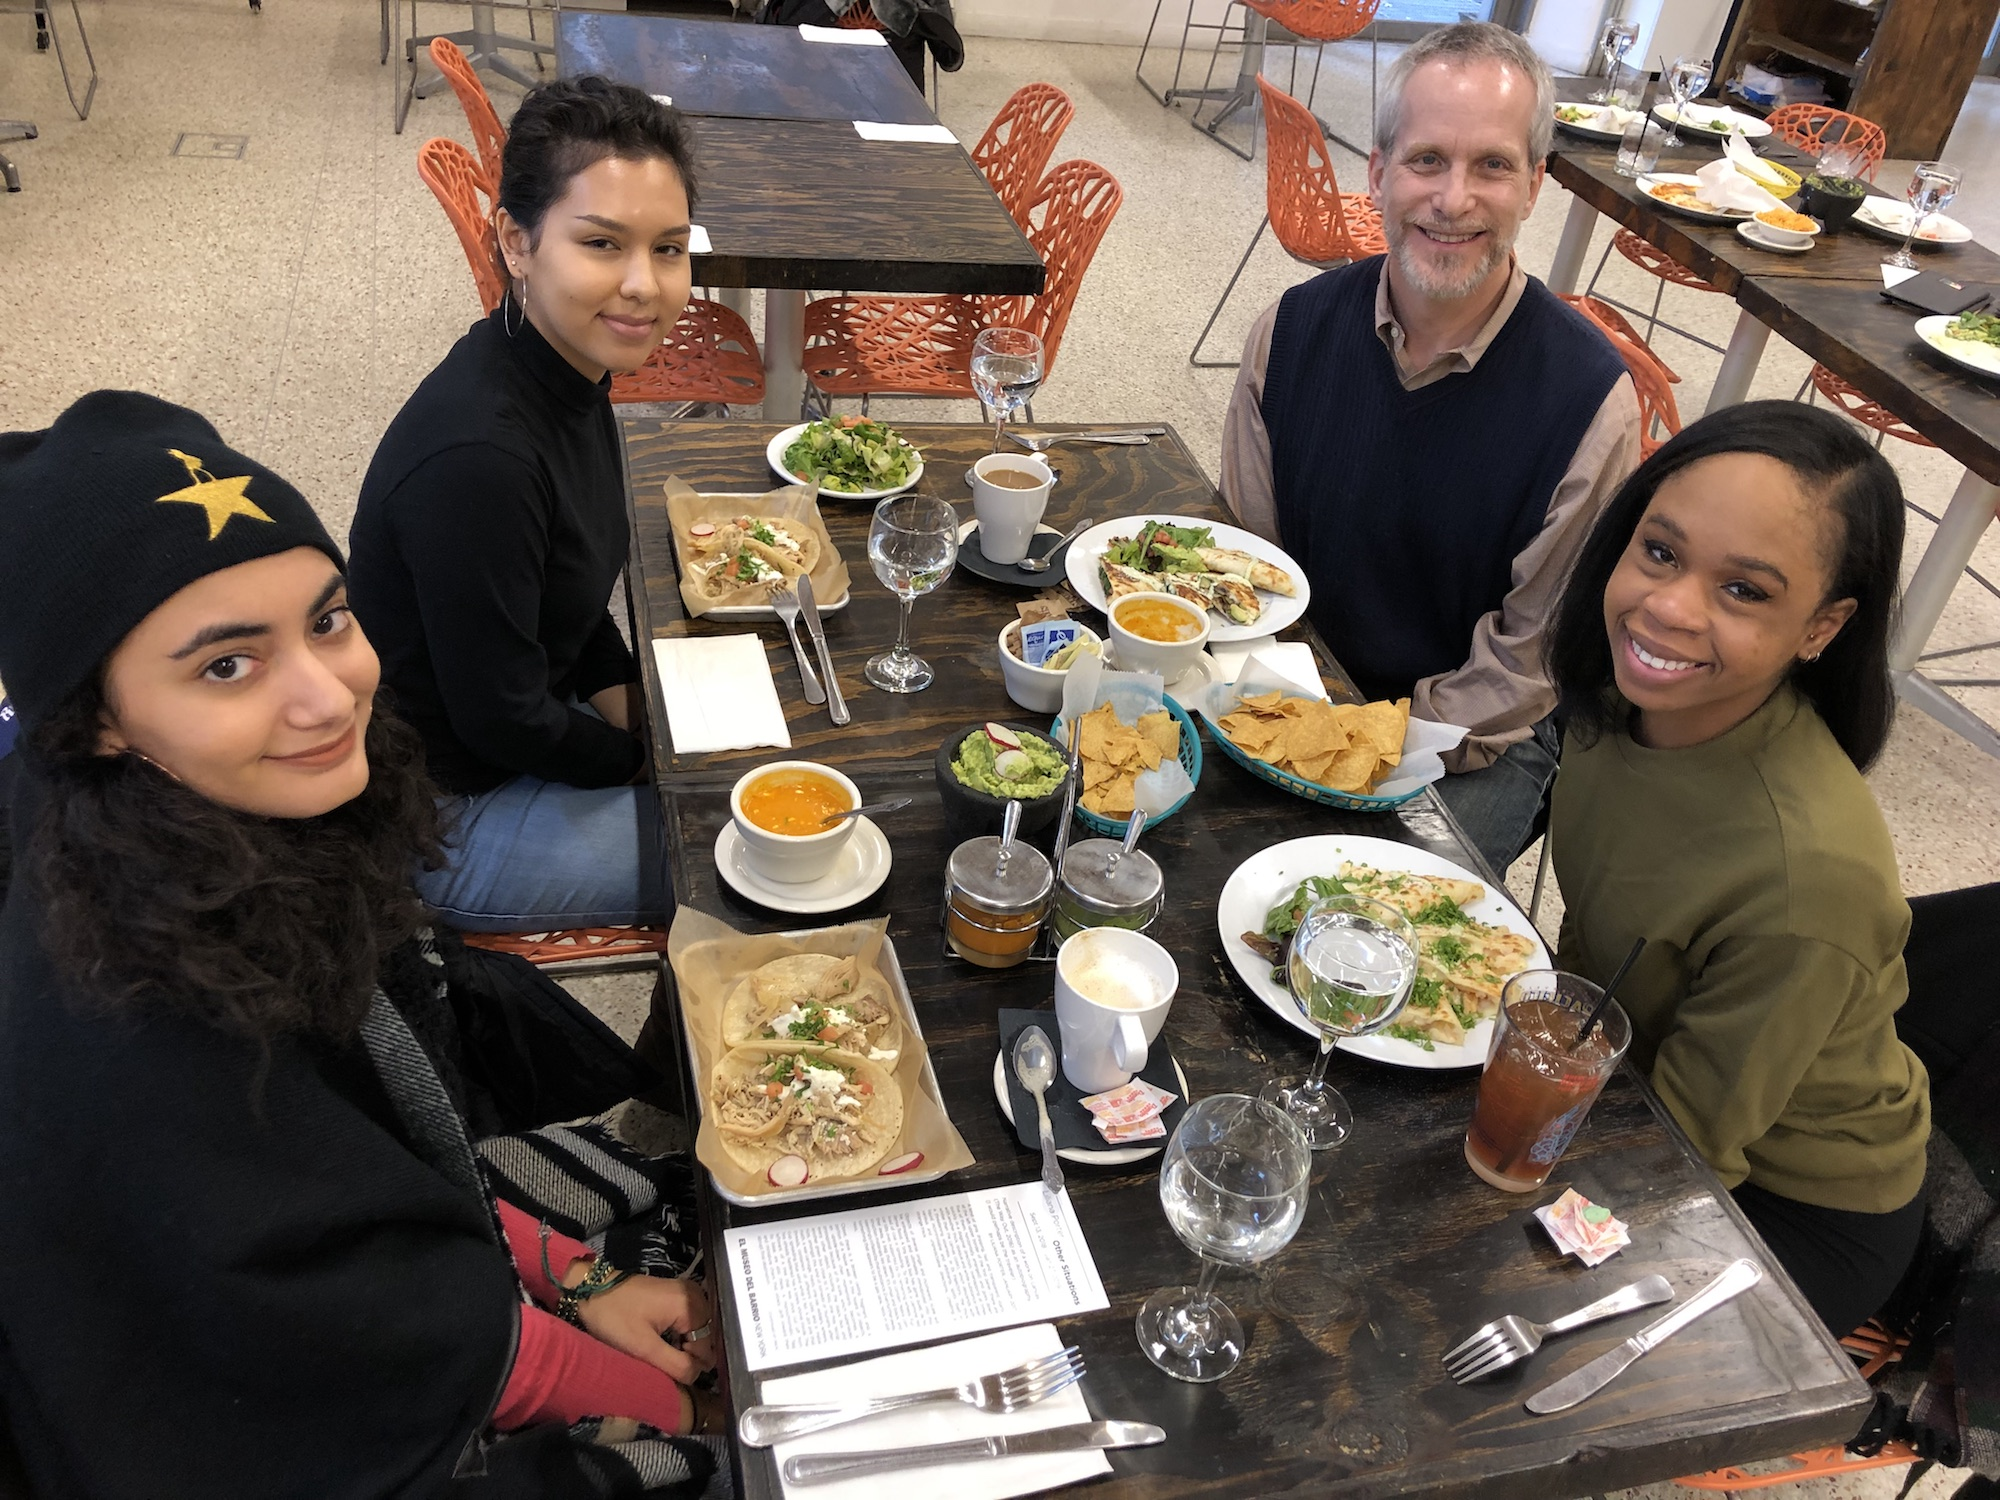 Lunch at El Museo del Barrio, with (clockwise from upper right) Prof. Adam Glenn and students Nneka Alaka, Eileen Cruz and Krystie Calle.